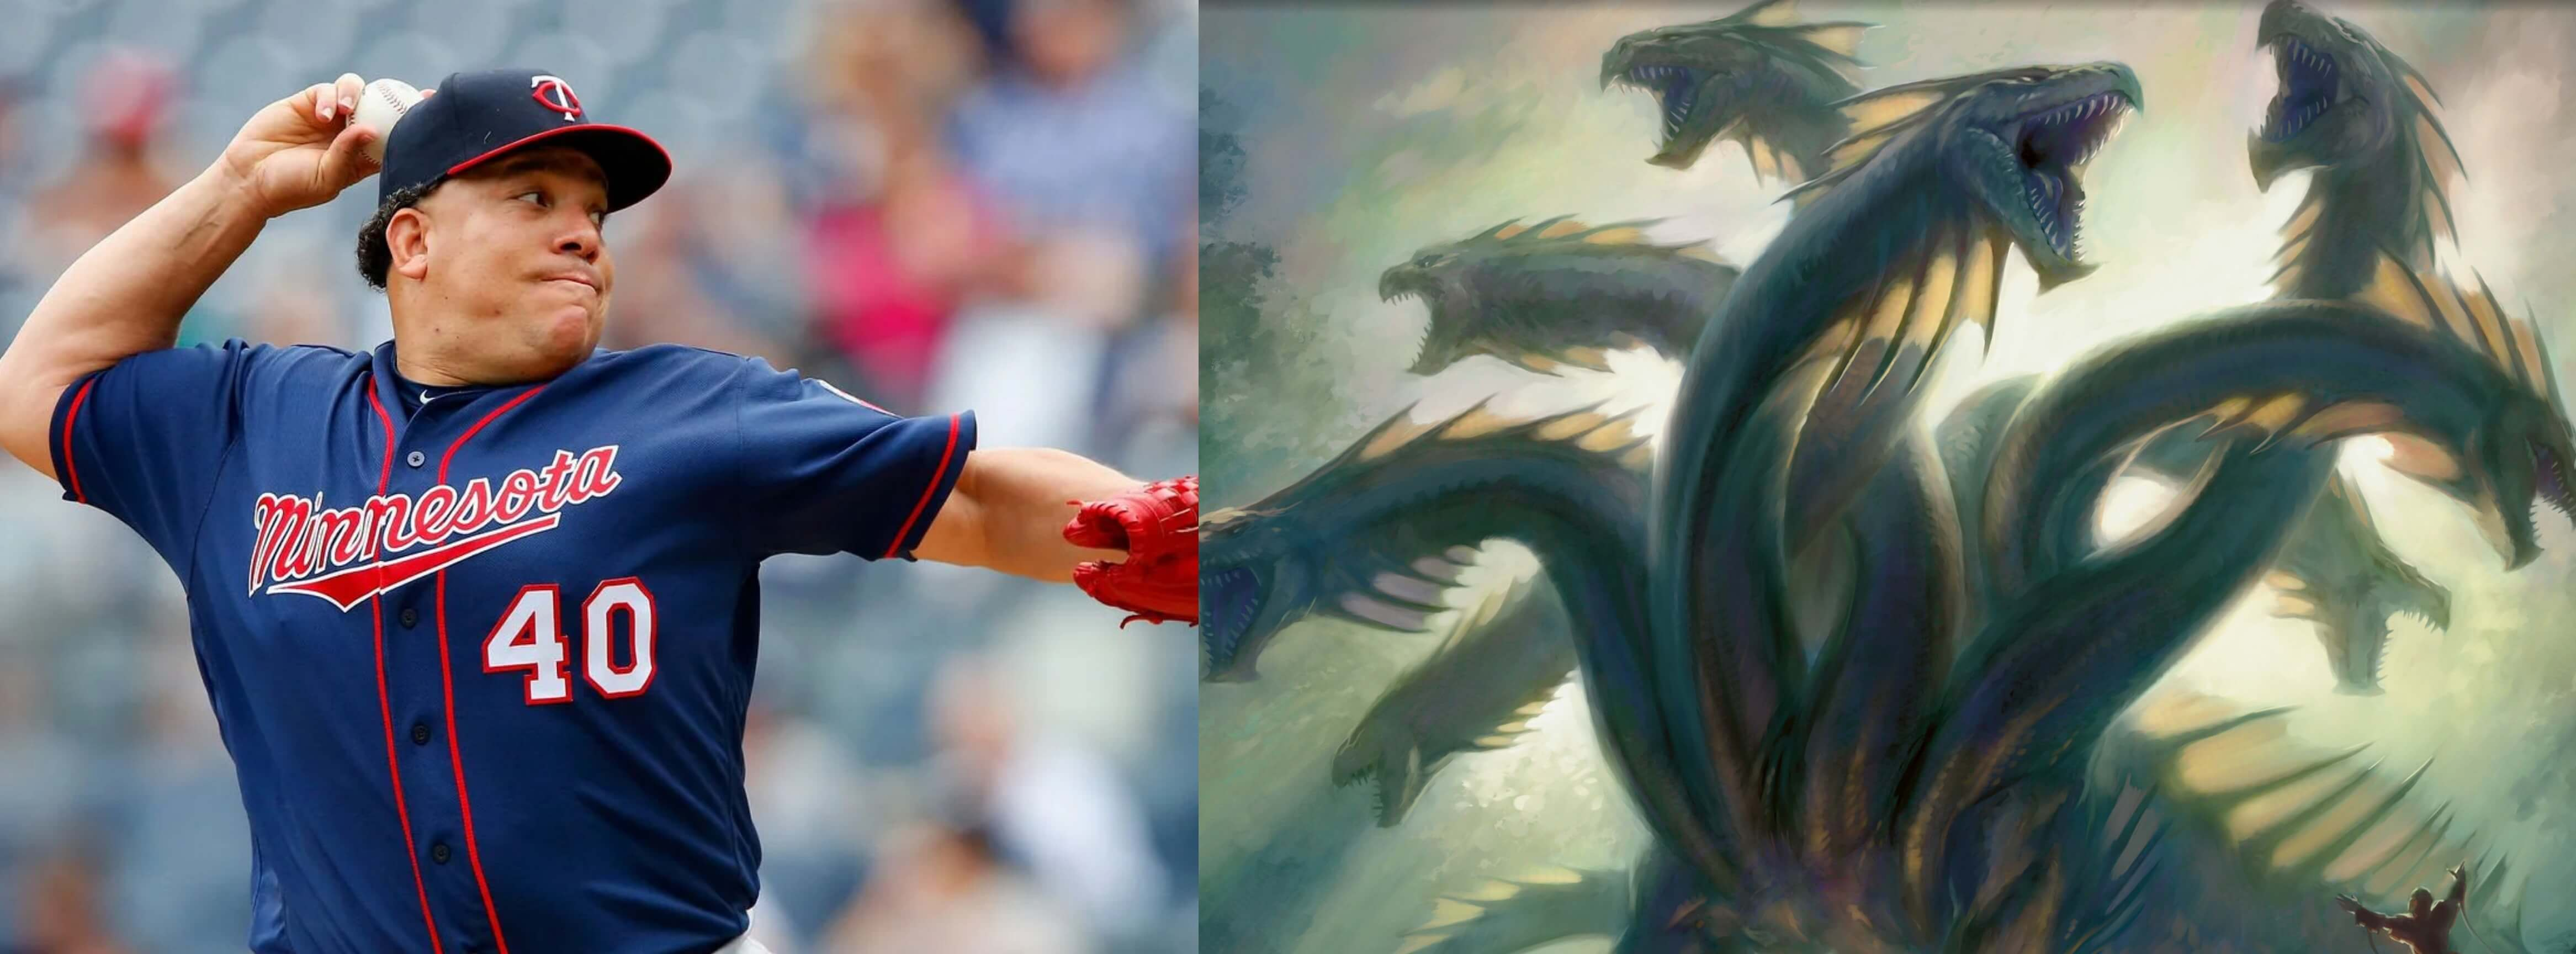 Bartolo Colon taiwan nickname is 8 headed dragon